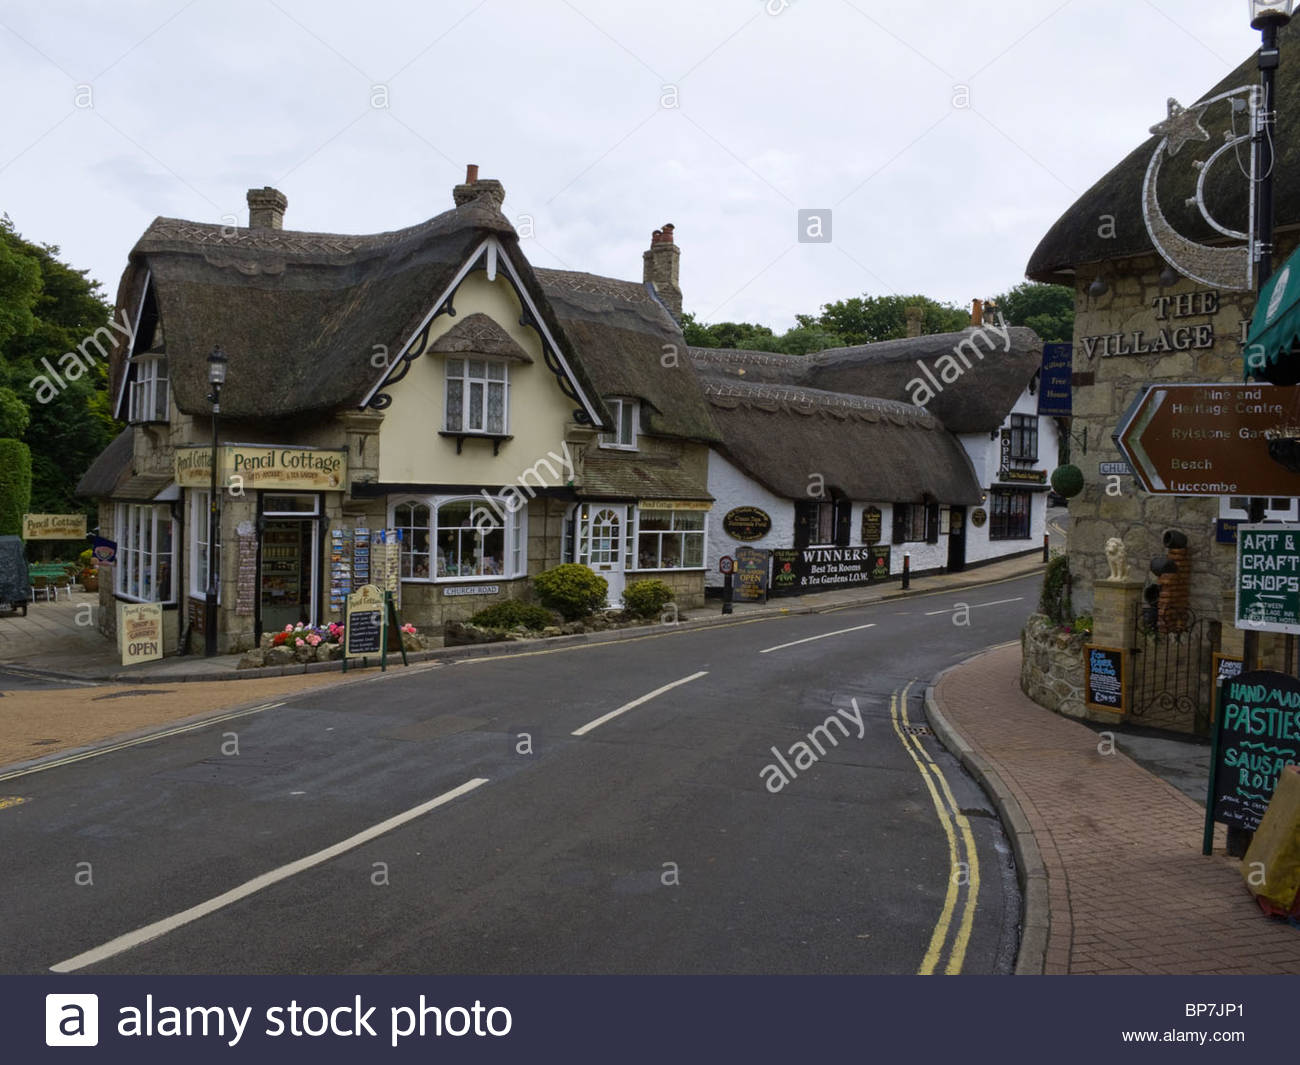 Isl of Wight Pencil Cottage Shanklin - Stock Image